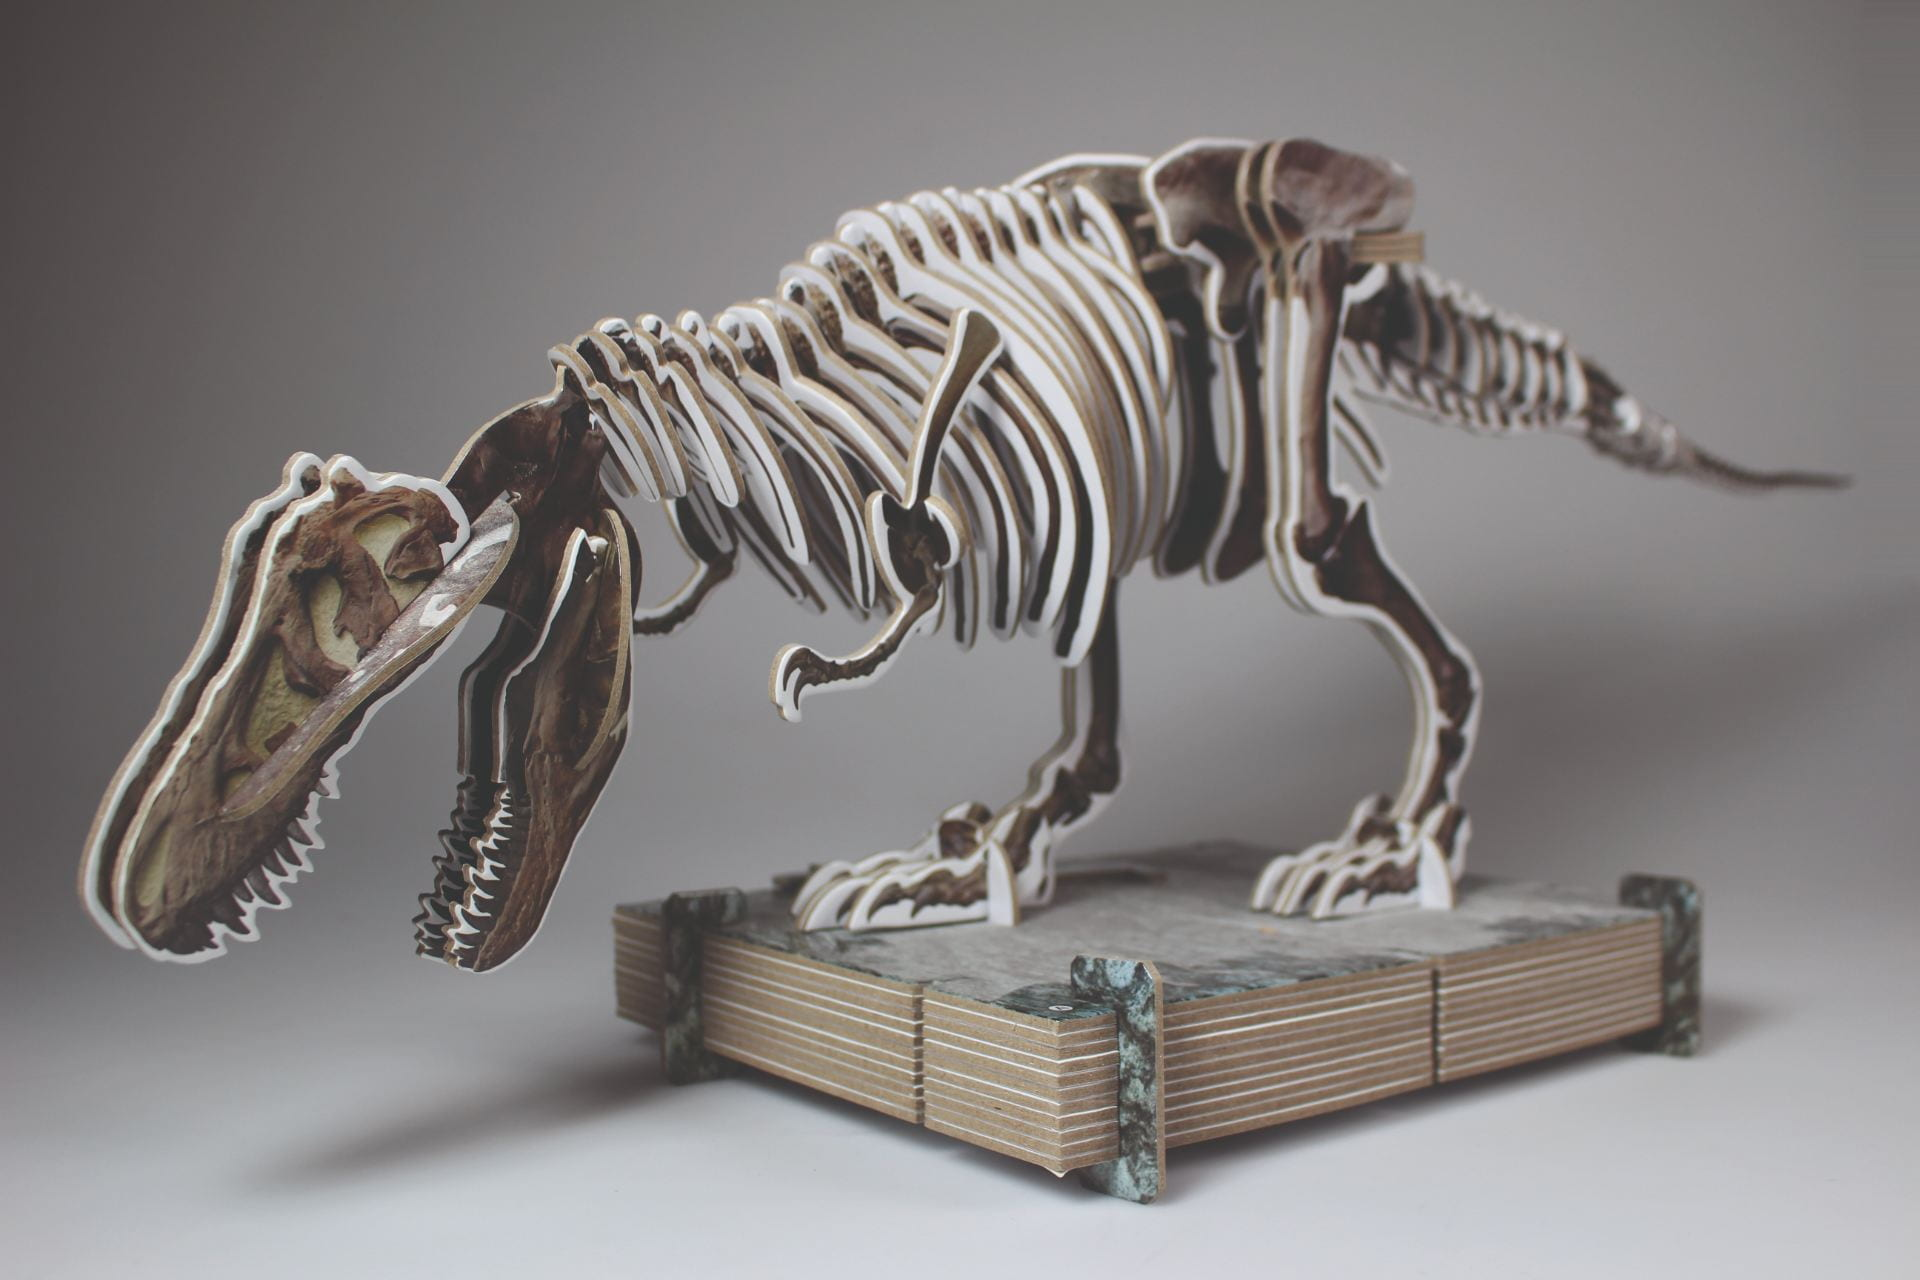 'Dorling Kindersley', 'Make Your Own T.Rex' Picture Book, Model Kit Design by Jemma Westing